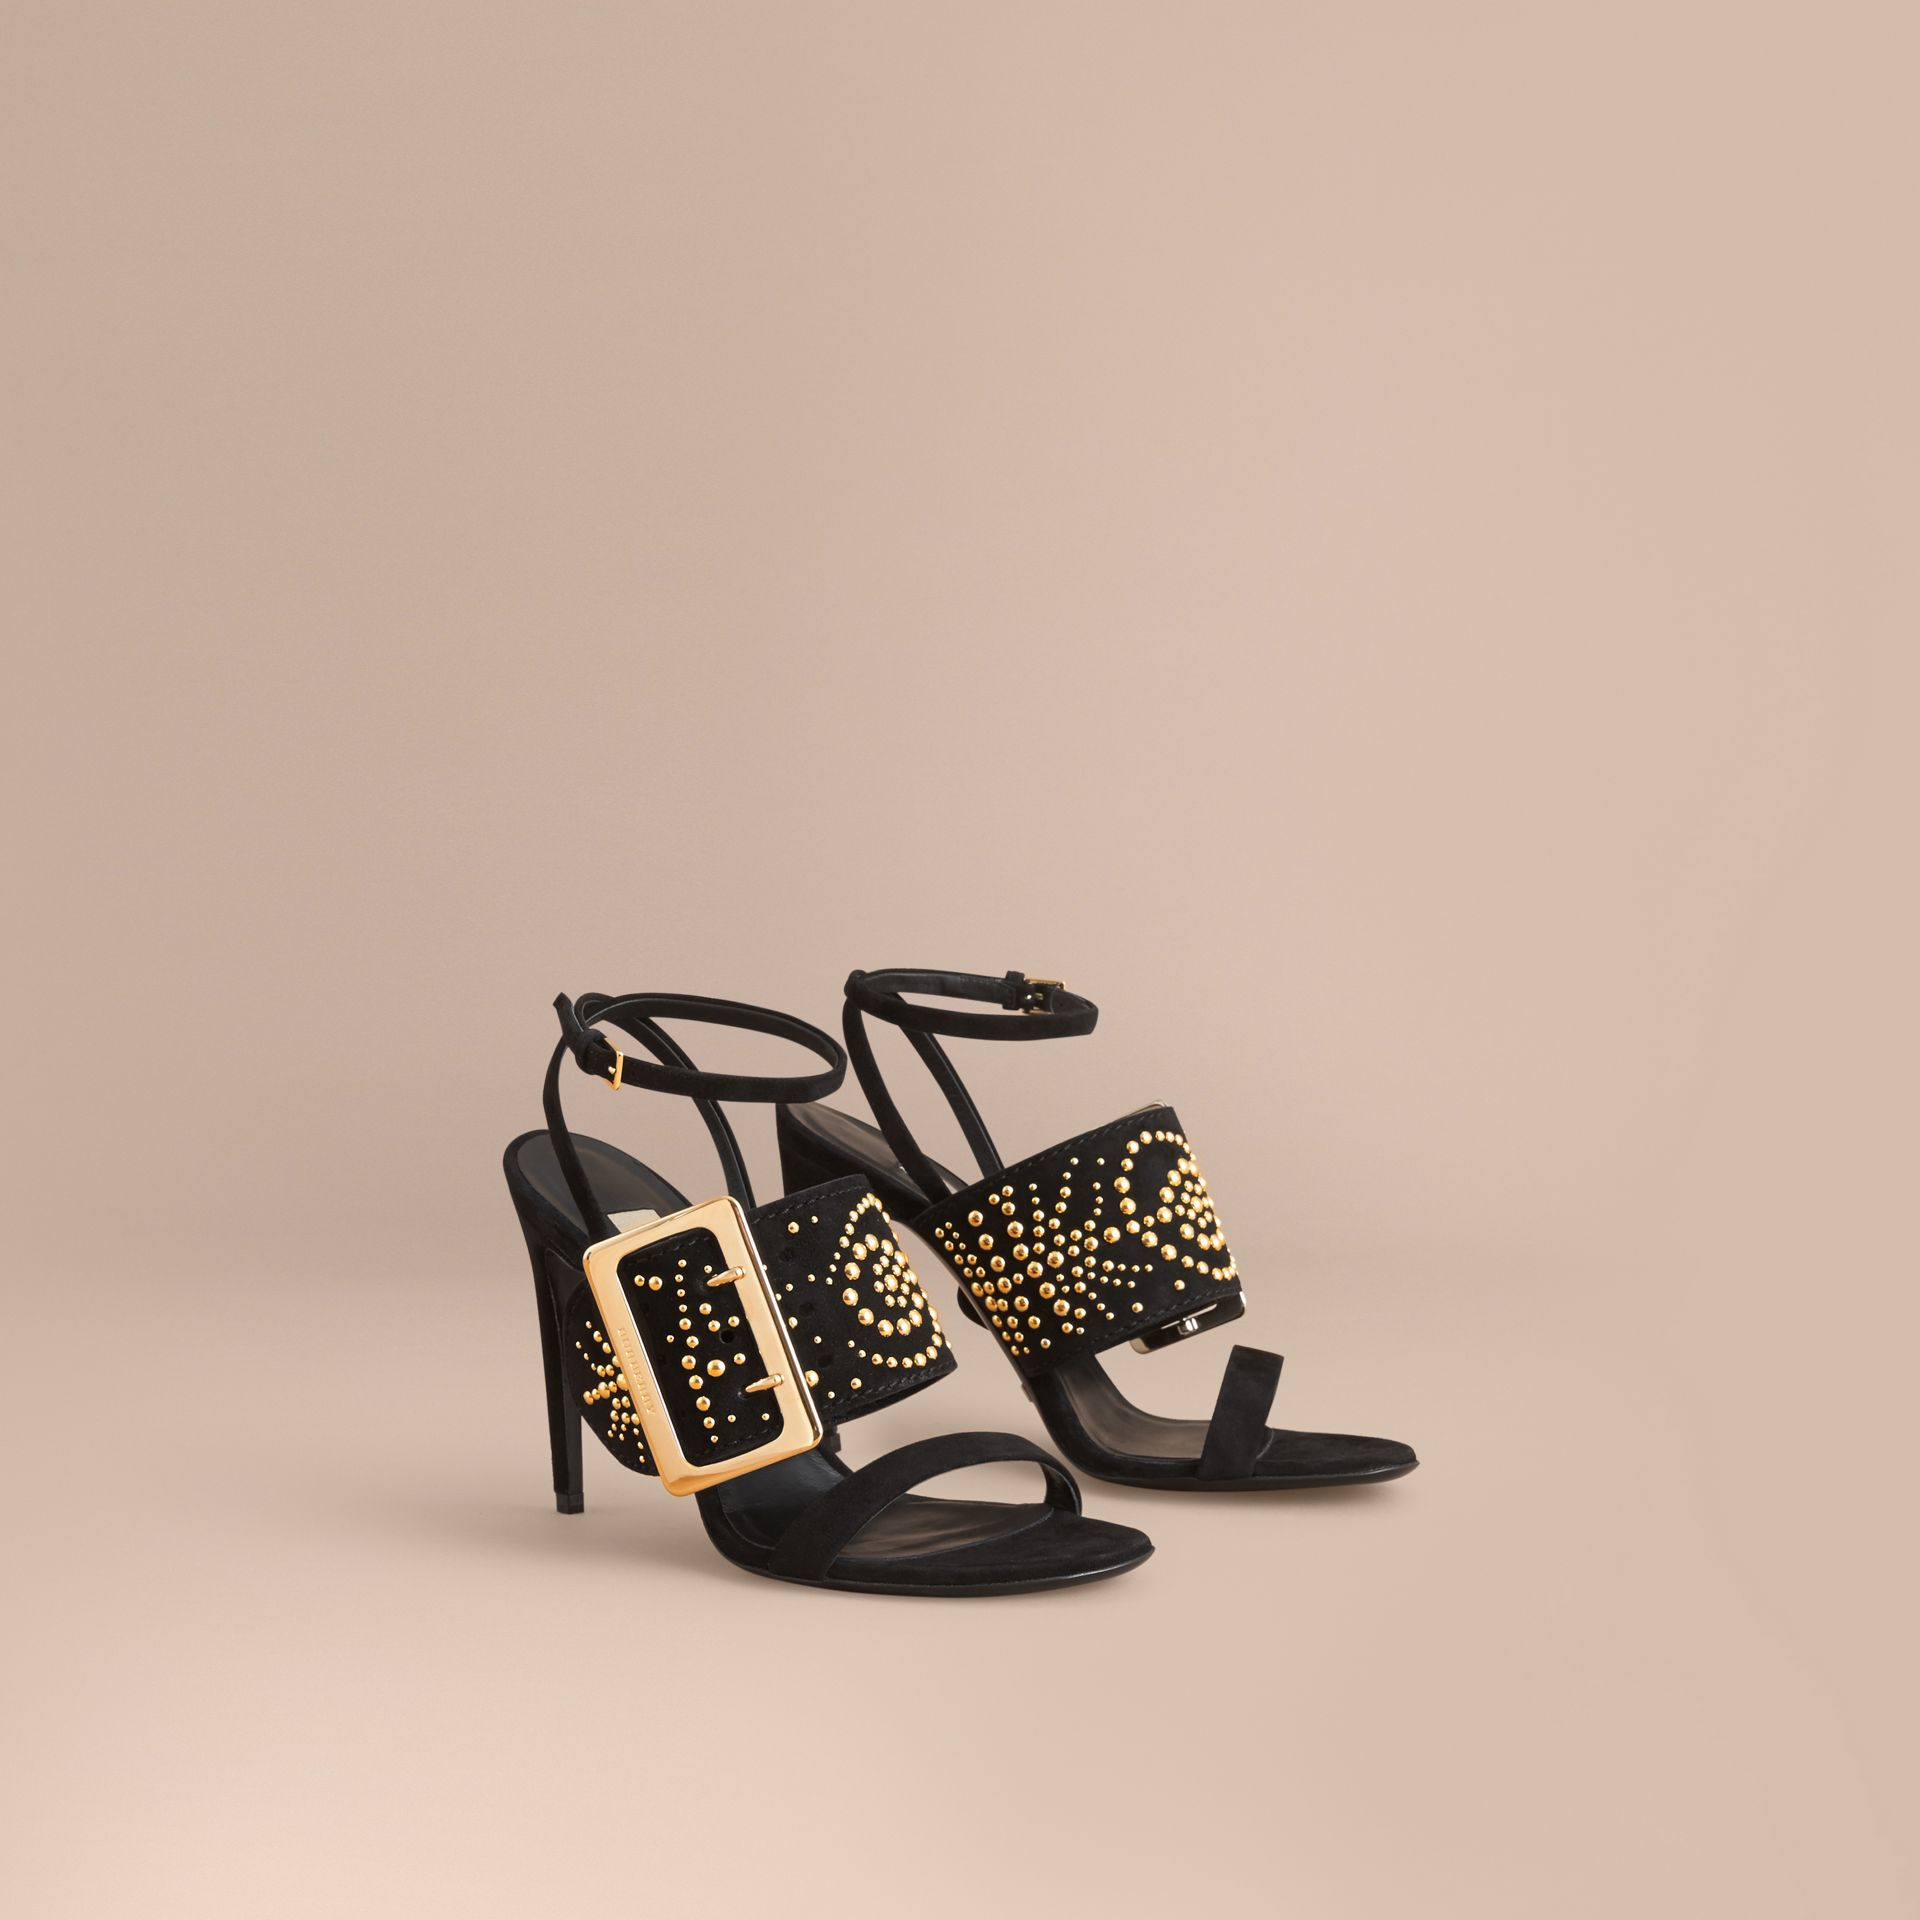 Riveted Suede Sandals with Buckle Detail Black - gallery image 1